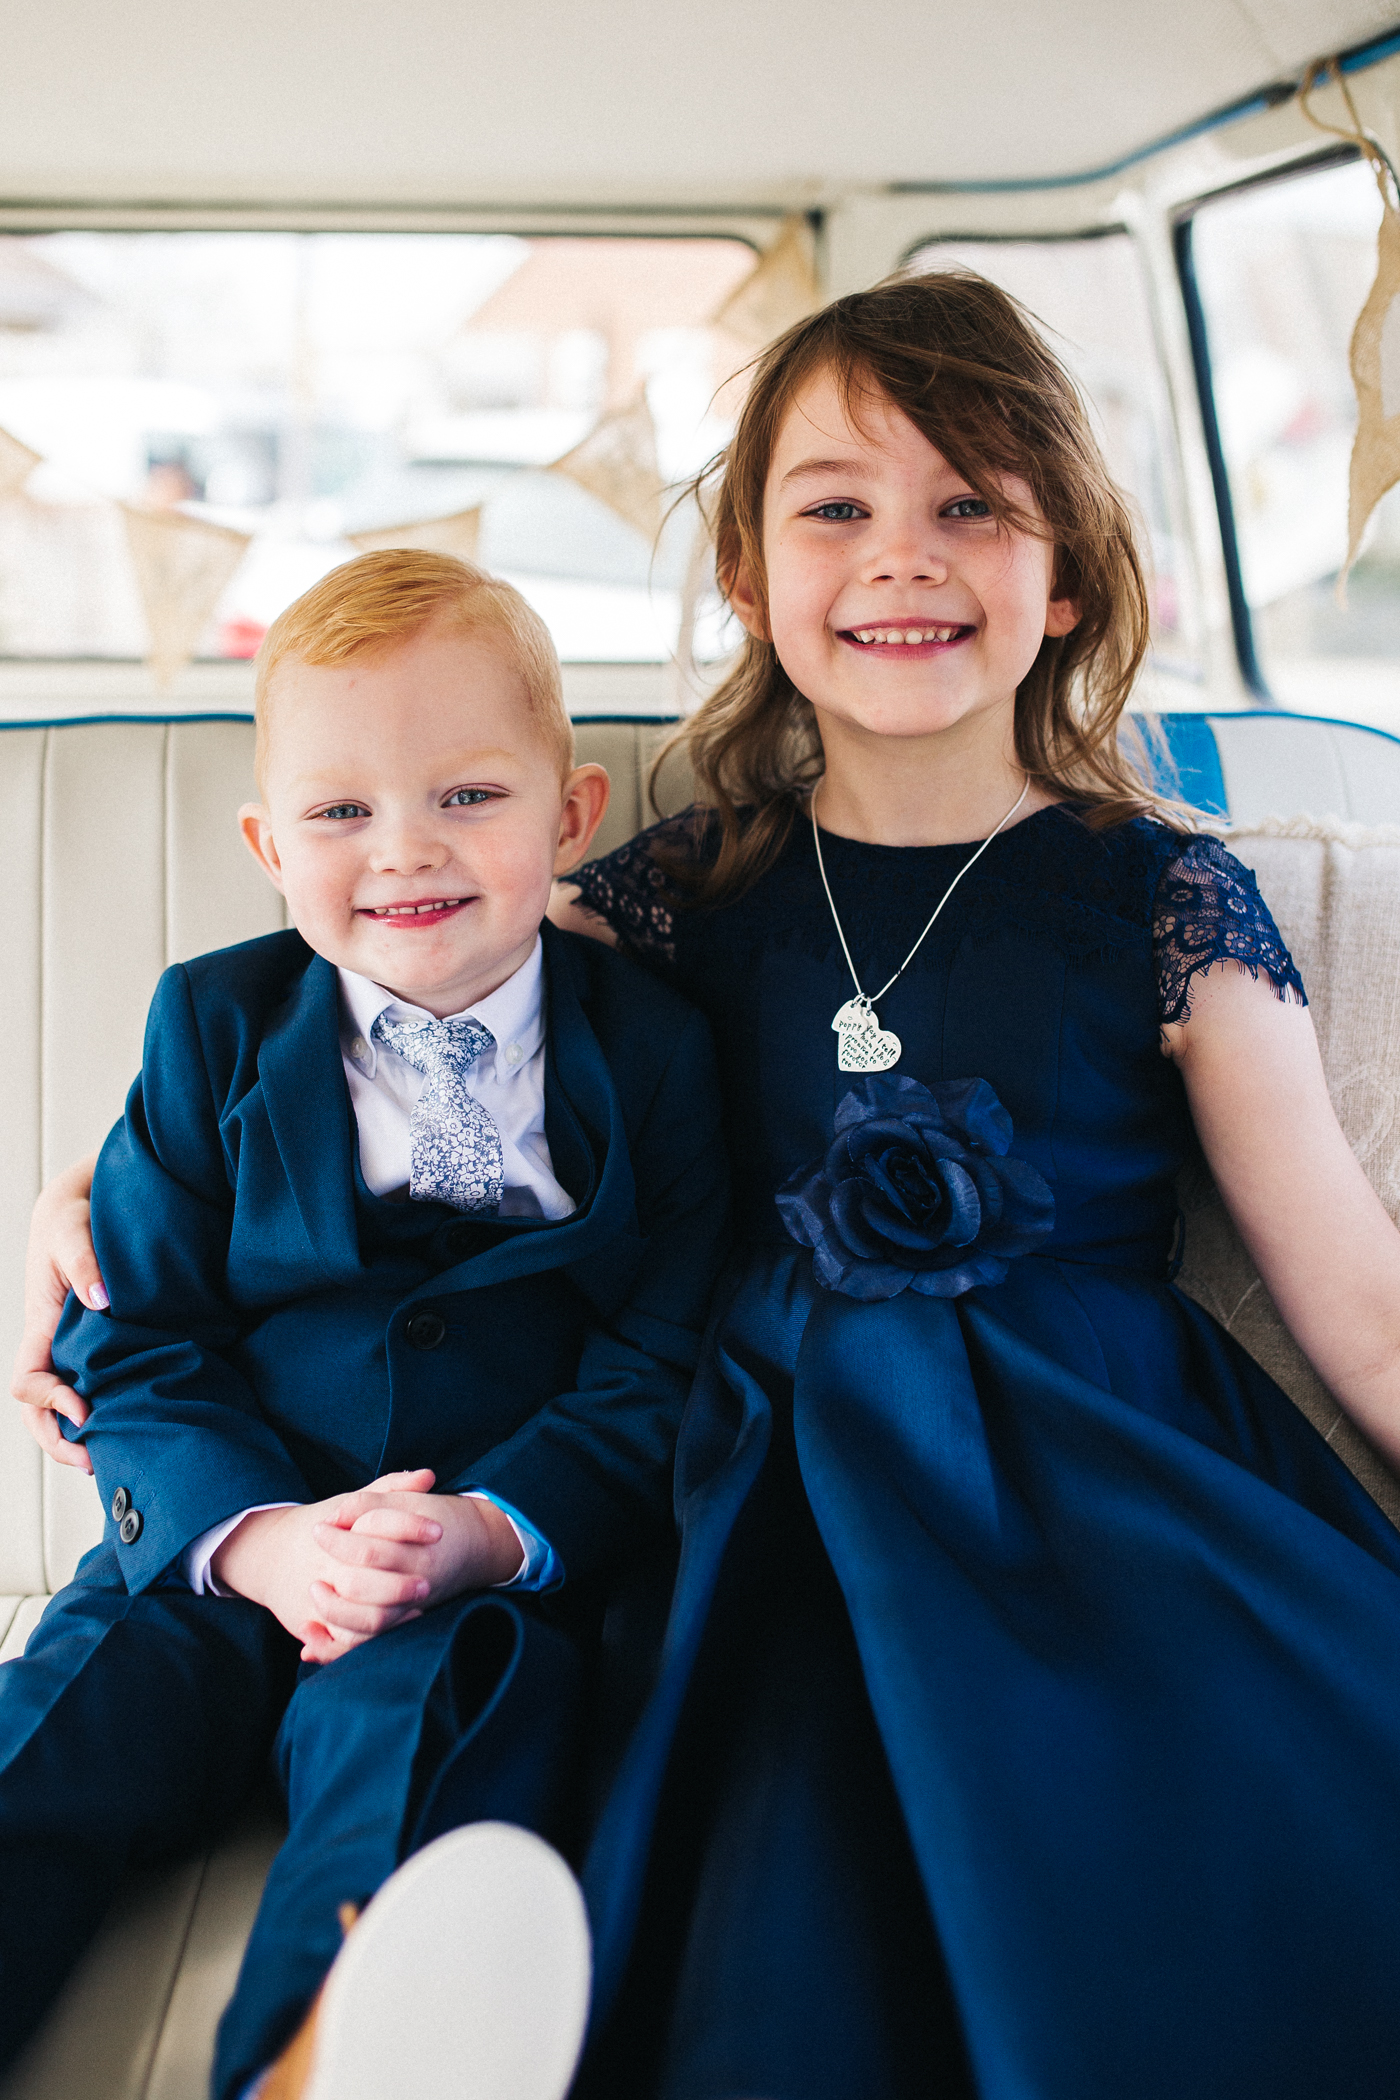 a young girl and boy smile at the camera sitting together. preston park museum wedding stockton teesside middlesbrough wedding photographer